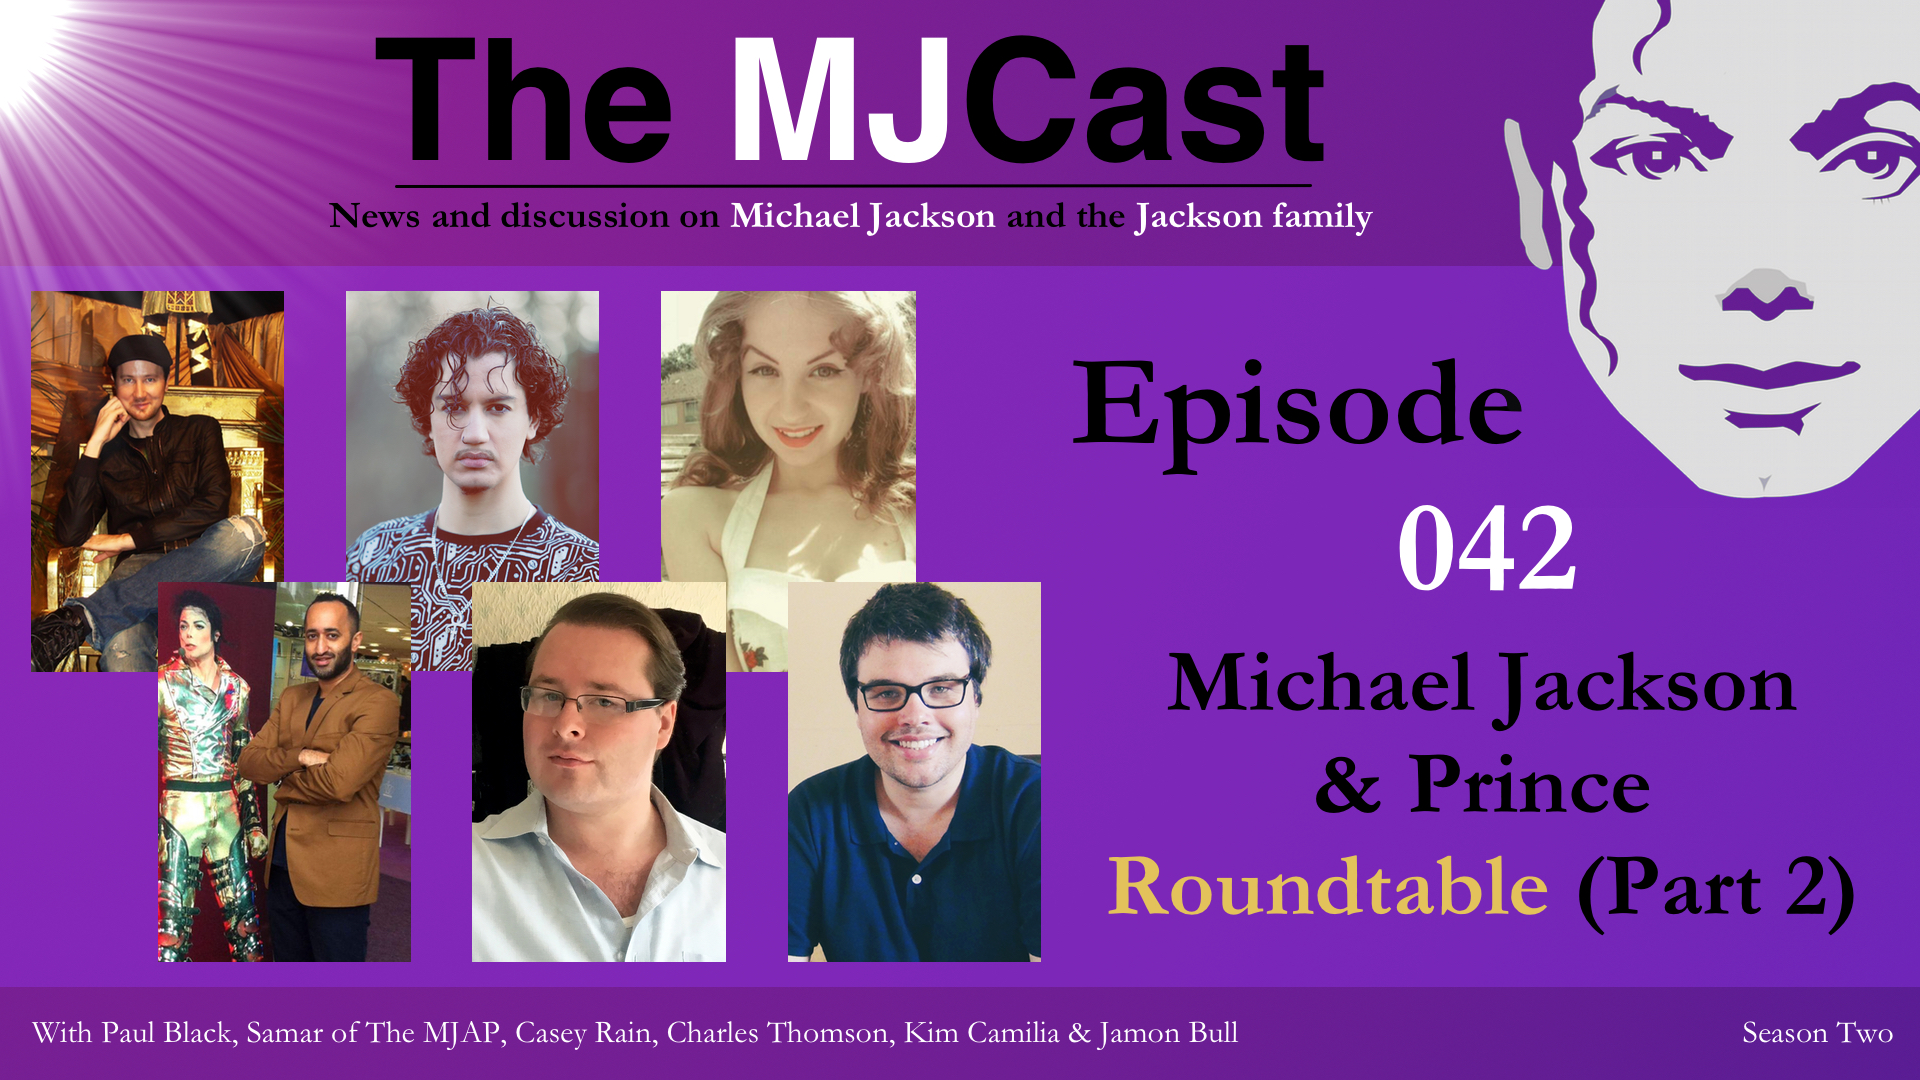 episode-042-michael-jackson-prince-roundtable-part-2-show-art